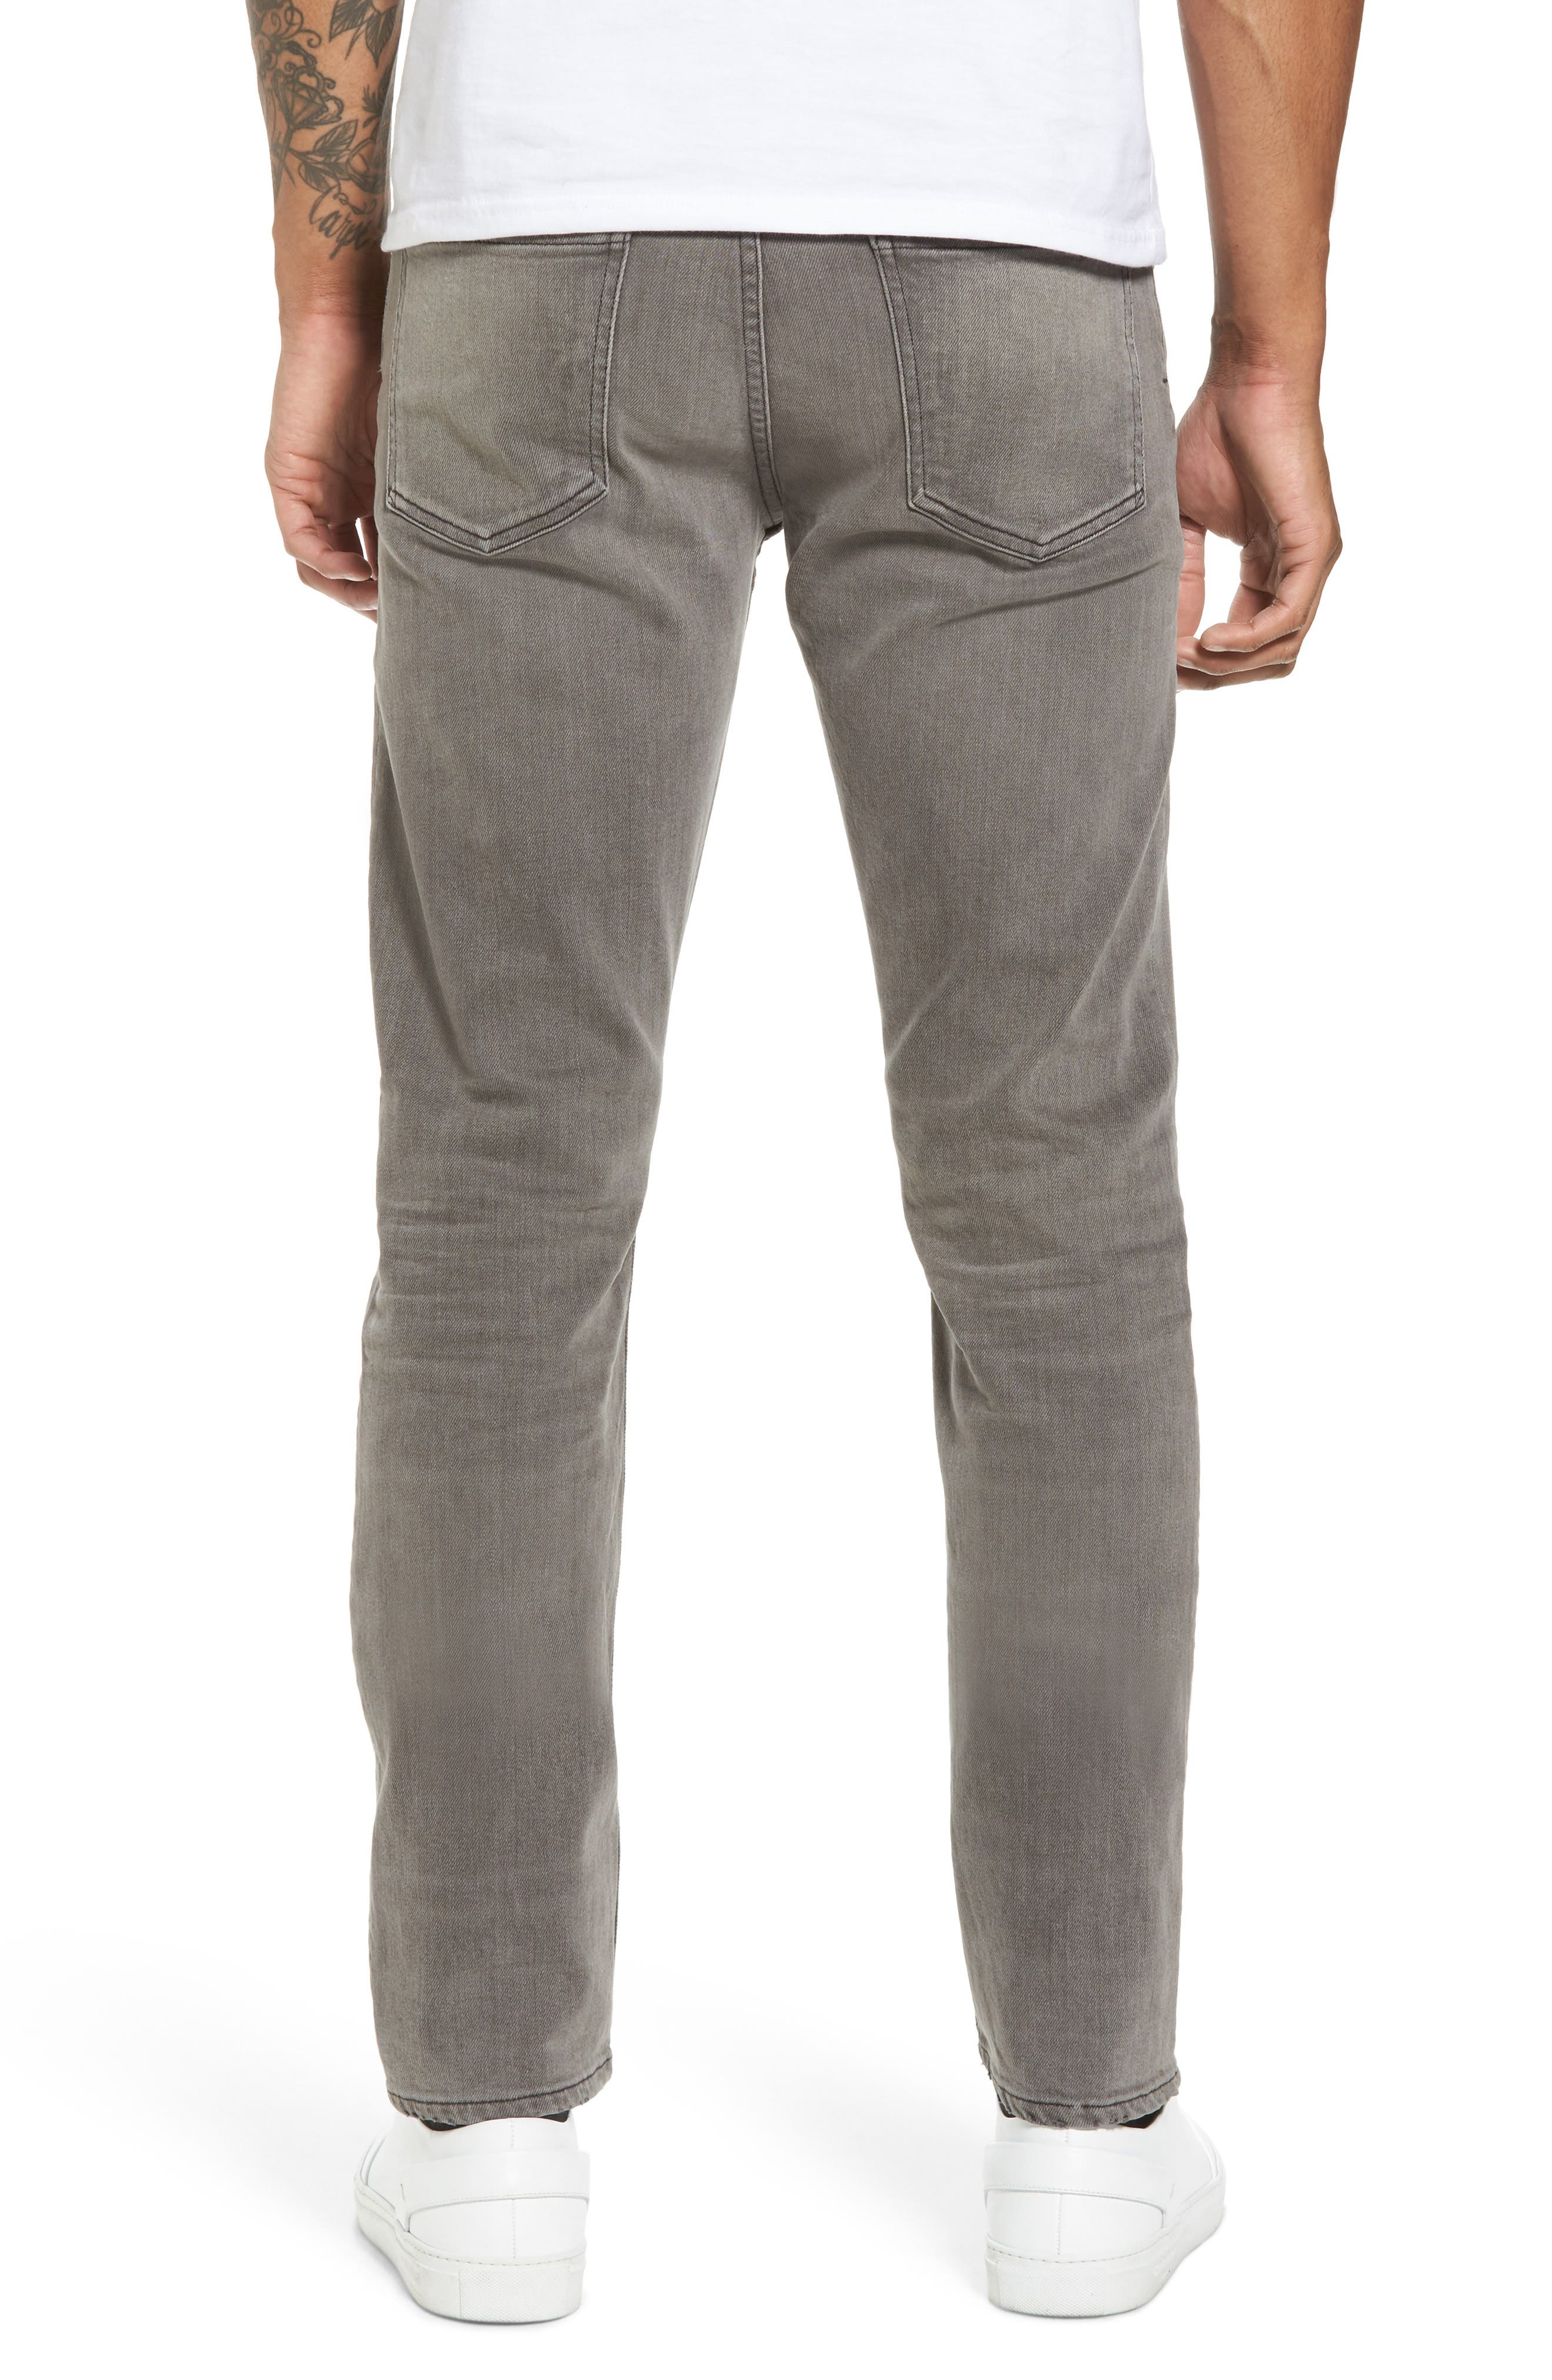 Bowery Slim Fit Jeans,                             Alternate thumbnail 2, color,                             LEON